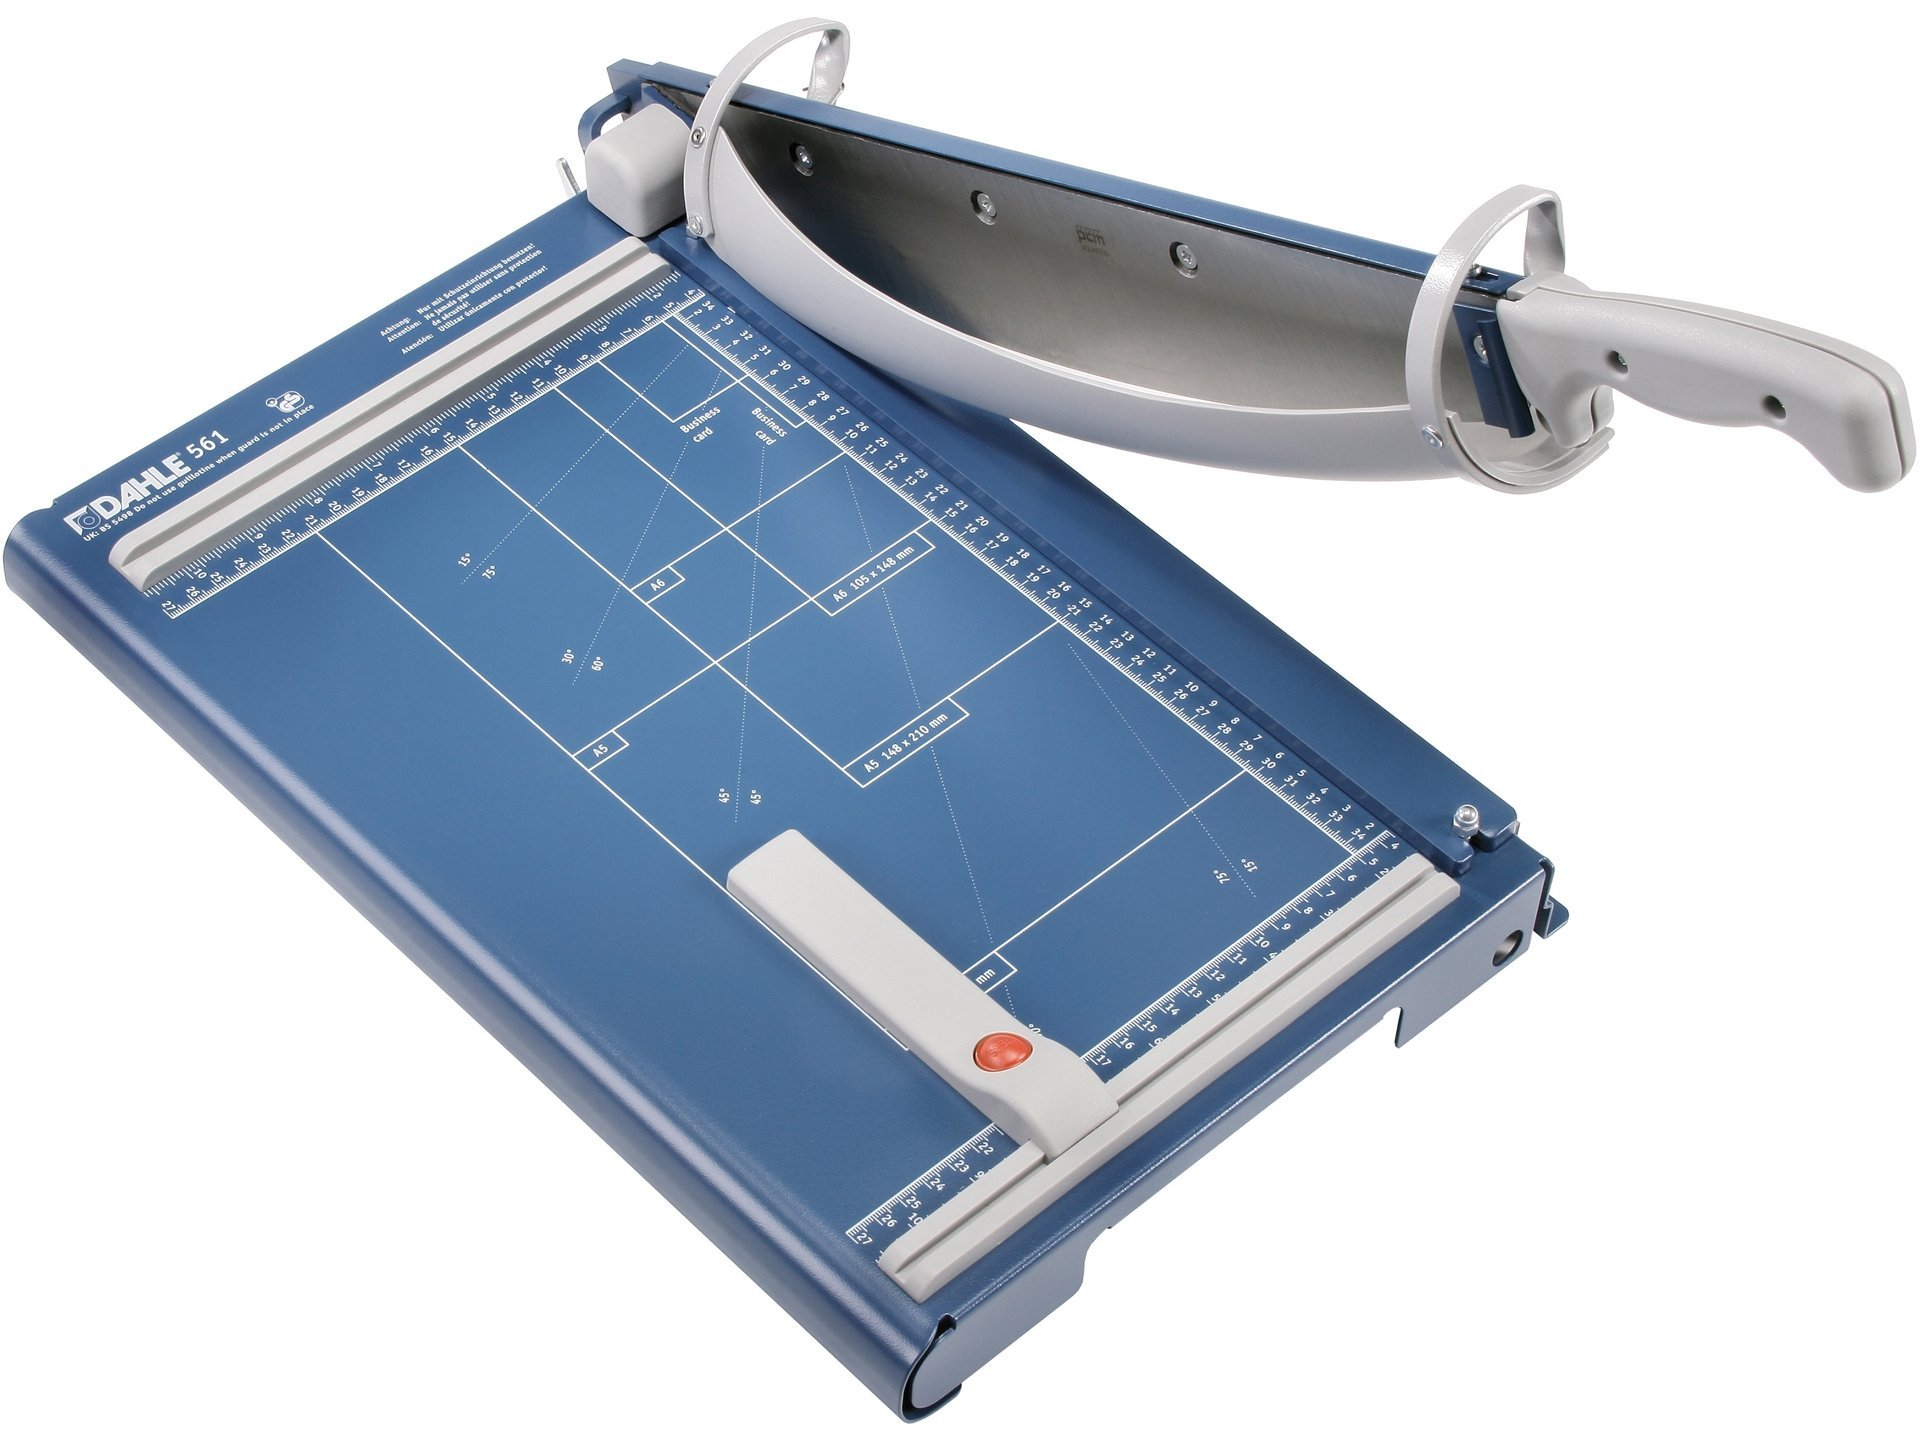 Buy Dahle guillotine paper cutter 561 online at Modulor